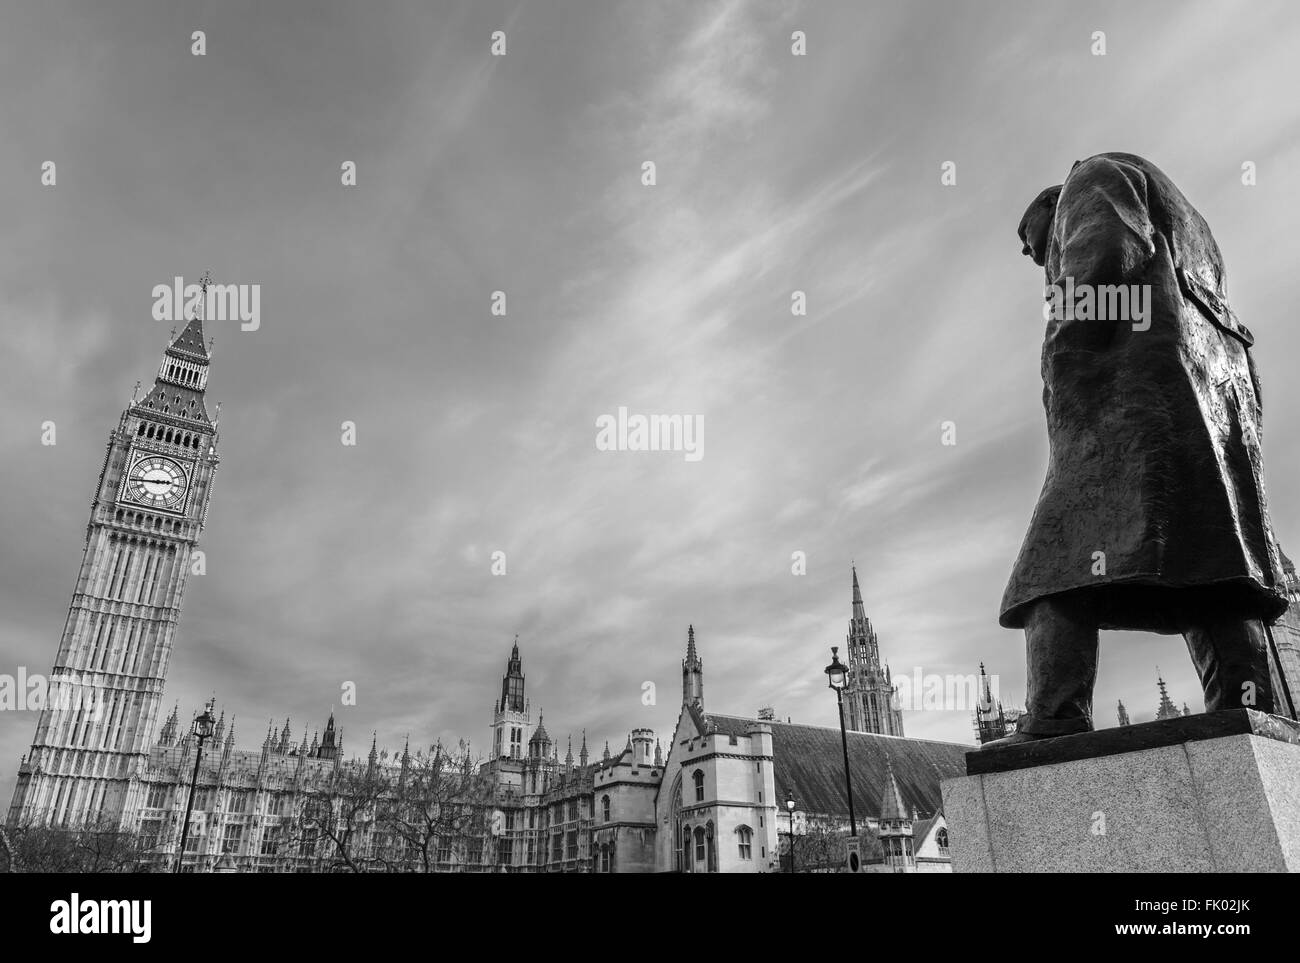 Statue von Sir Winston Churchill mit dem Palace of Westminster hinter, Parliament Square, Westminster, London, England, Stockbild